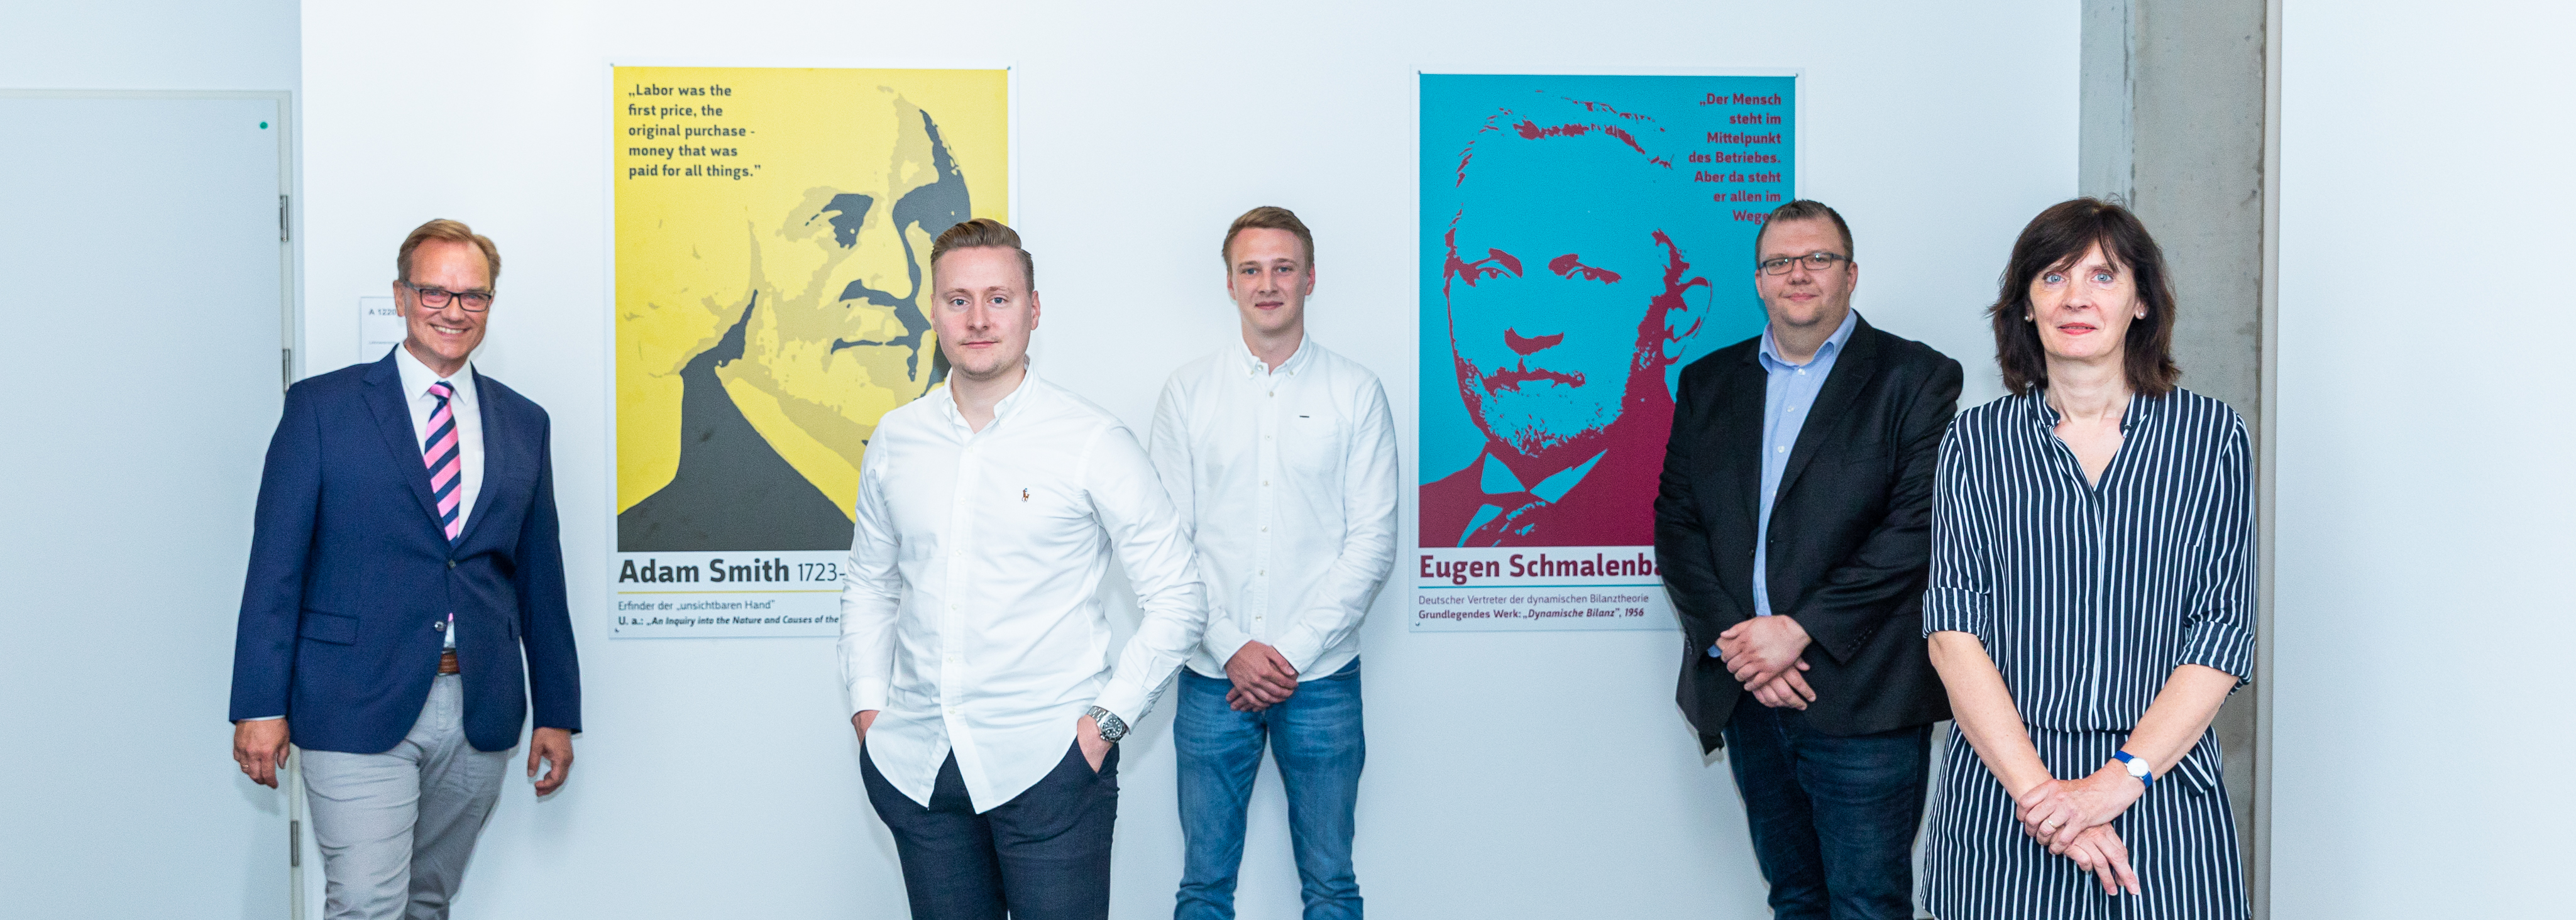 Five people stand in front of a wall with colourful posters.